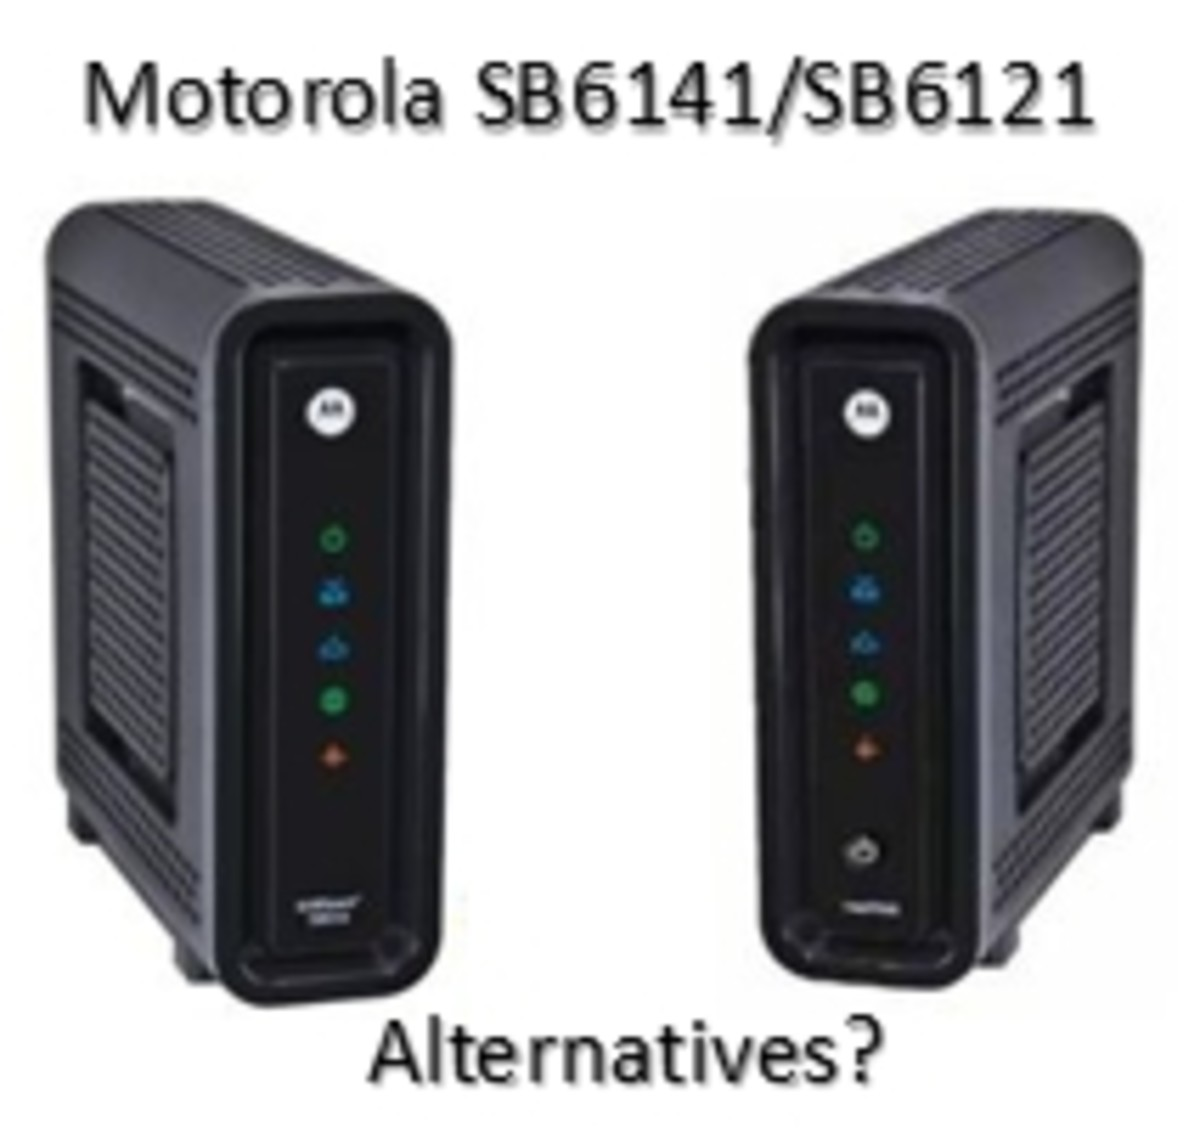 Other alternatives to Motorola SB6141 or SB6121?